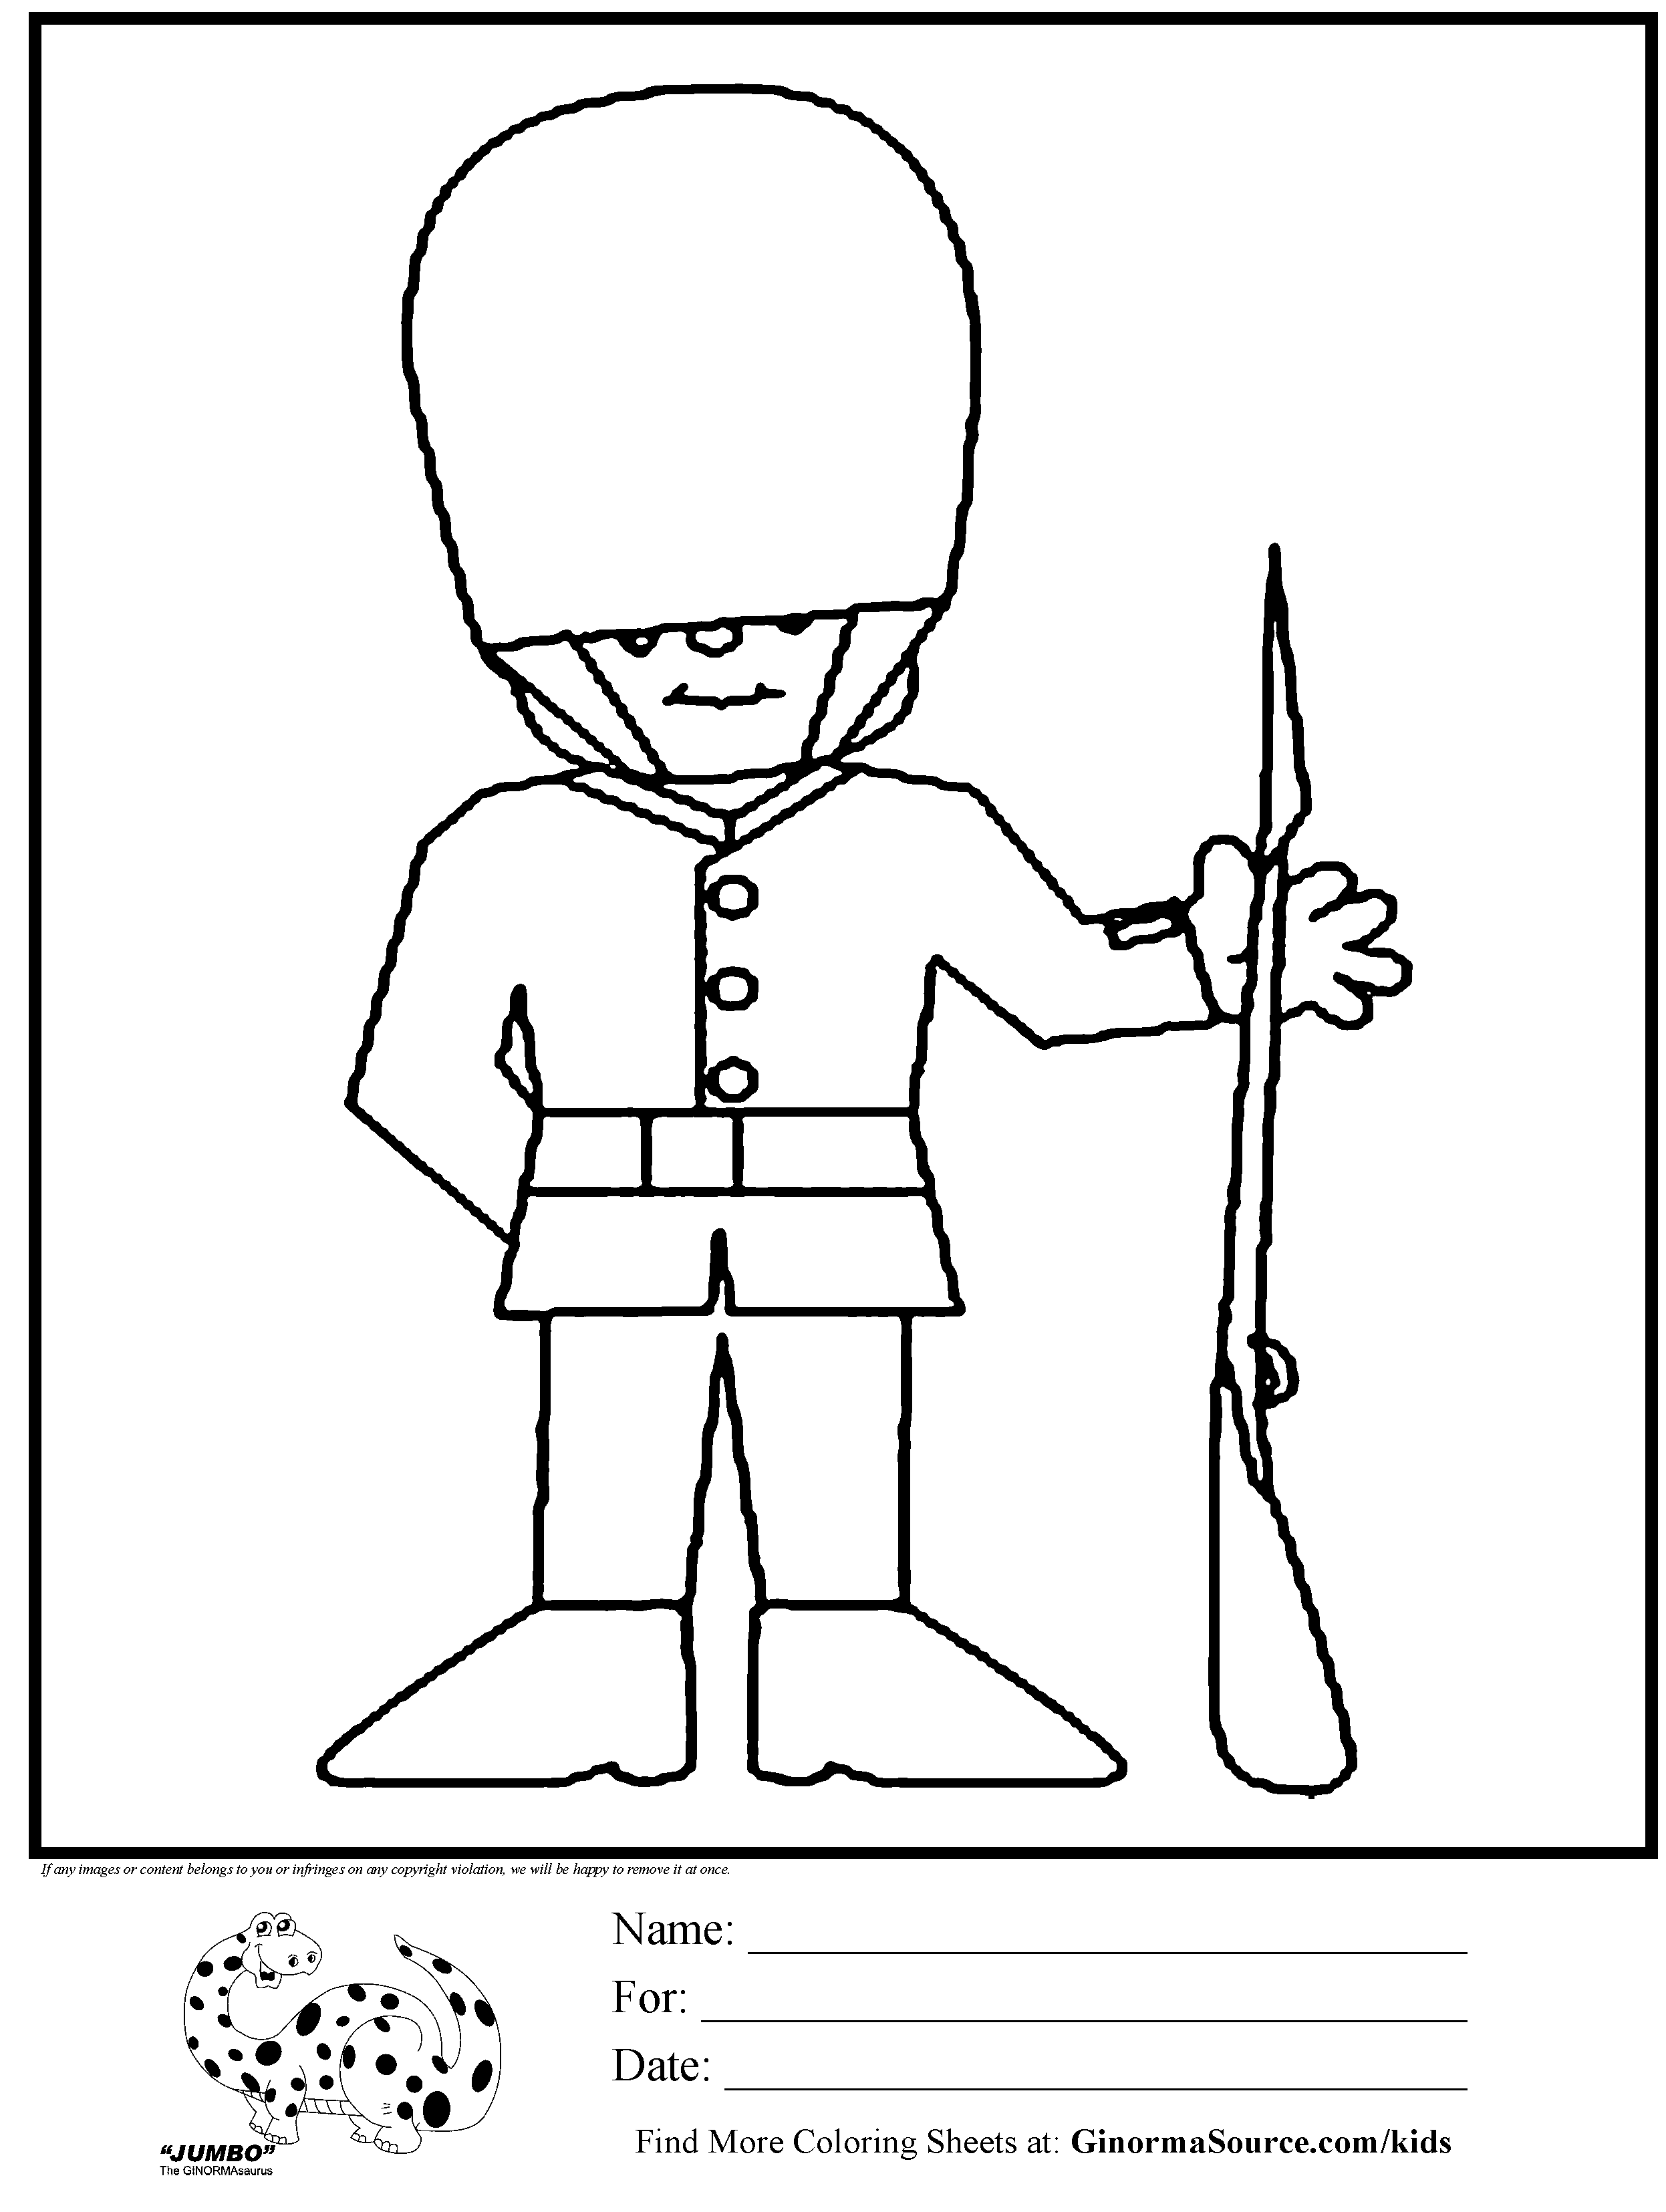 coloring pages - 21/62 - GINORMAsource Kids | World Thinking Day ...